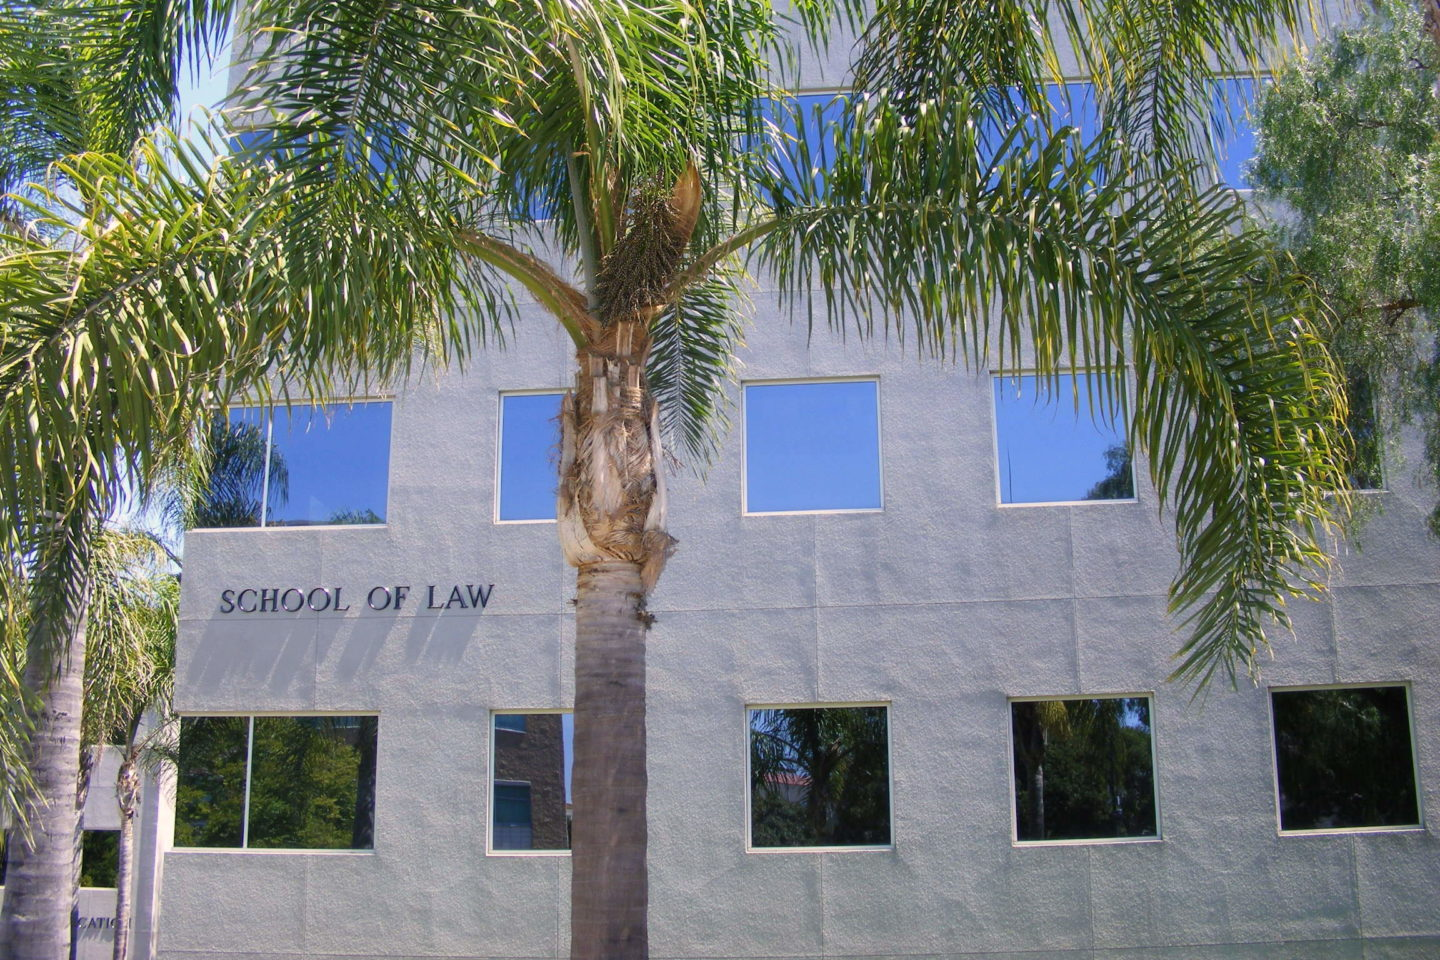 UC Irvine Law School. Photo credit: Mathieu Marquer